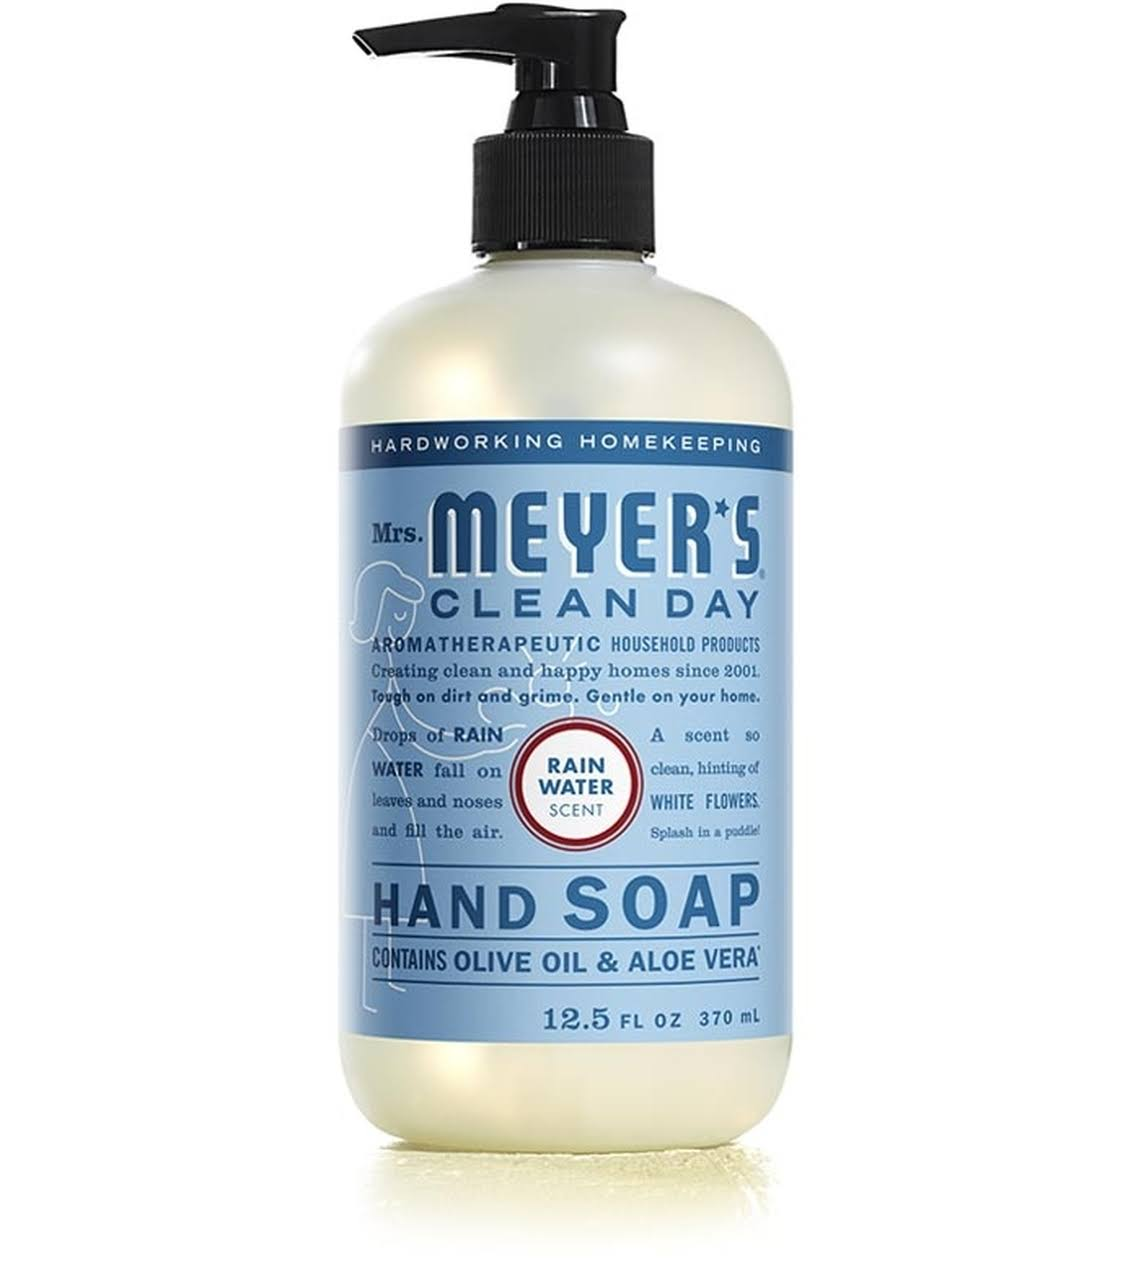 Meyers Clean Day Hand Soap, Rain Water Scent - 12.5 fl oz